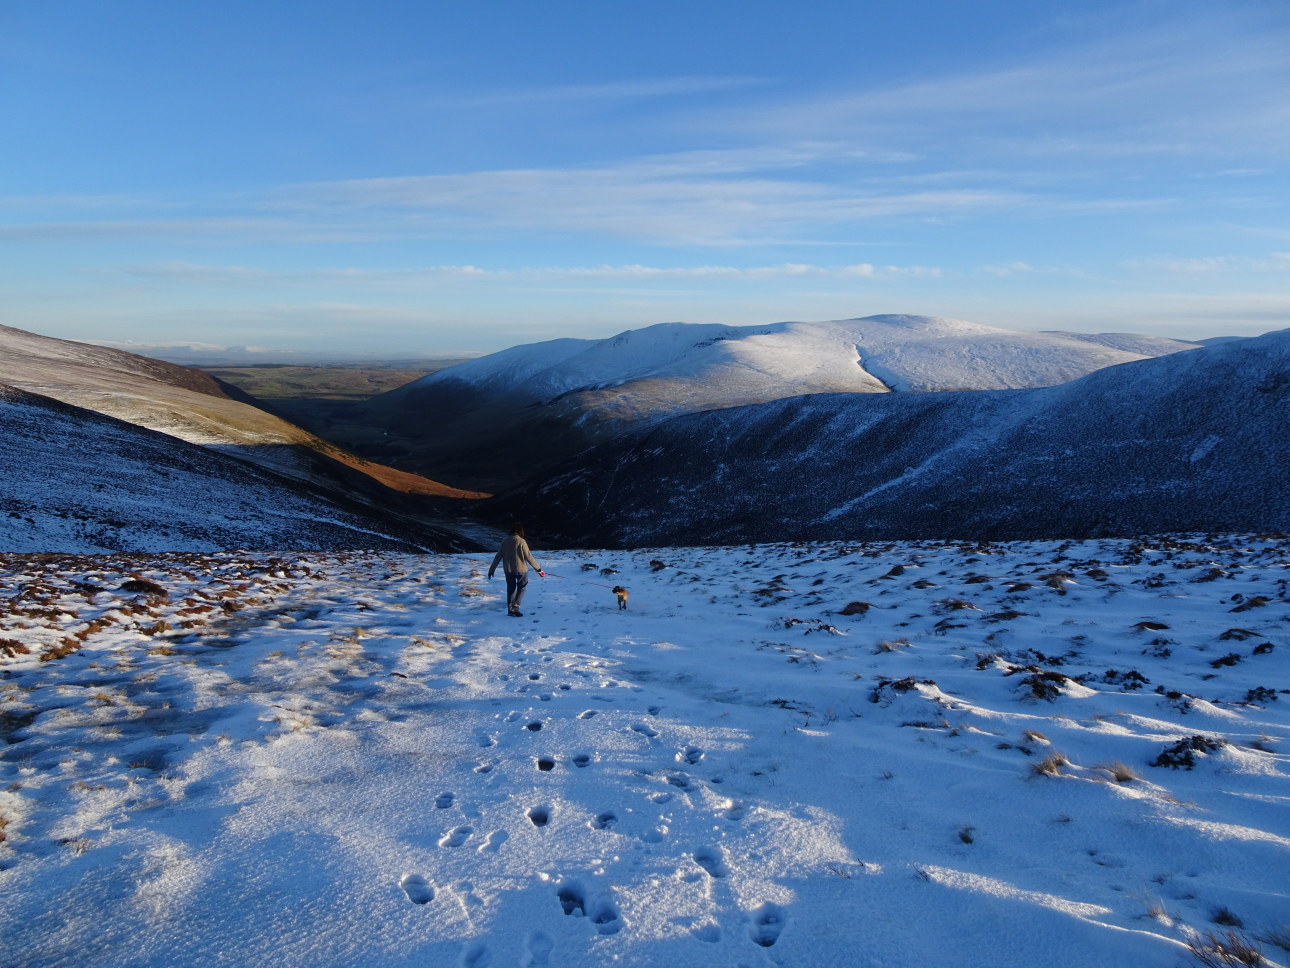 Descending  into  the Caldew Valley with Bowscale Fell to the right. Taken at  4:26pm.